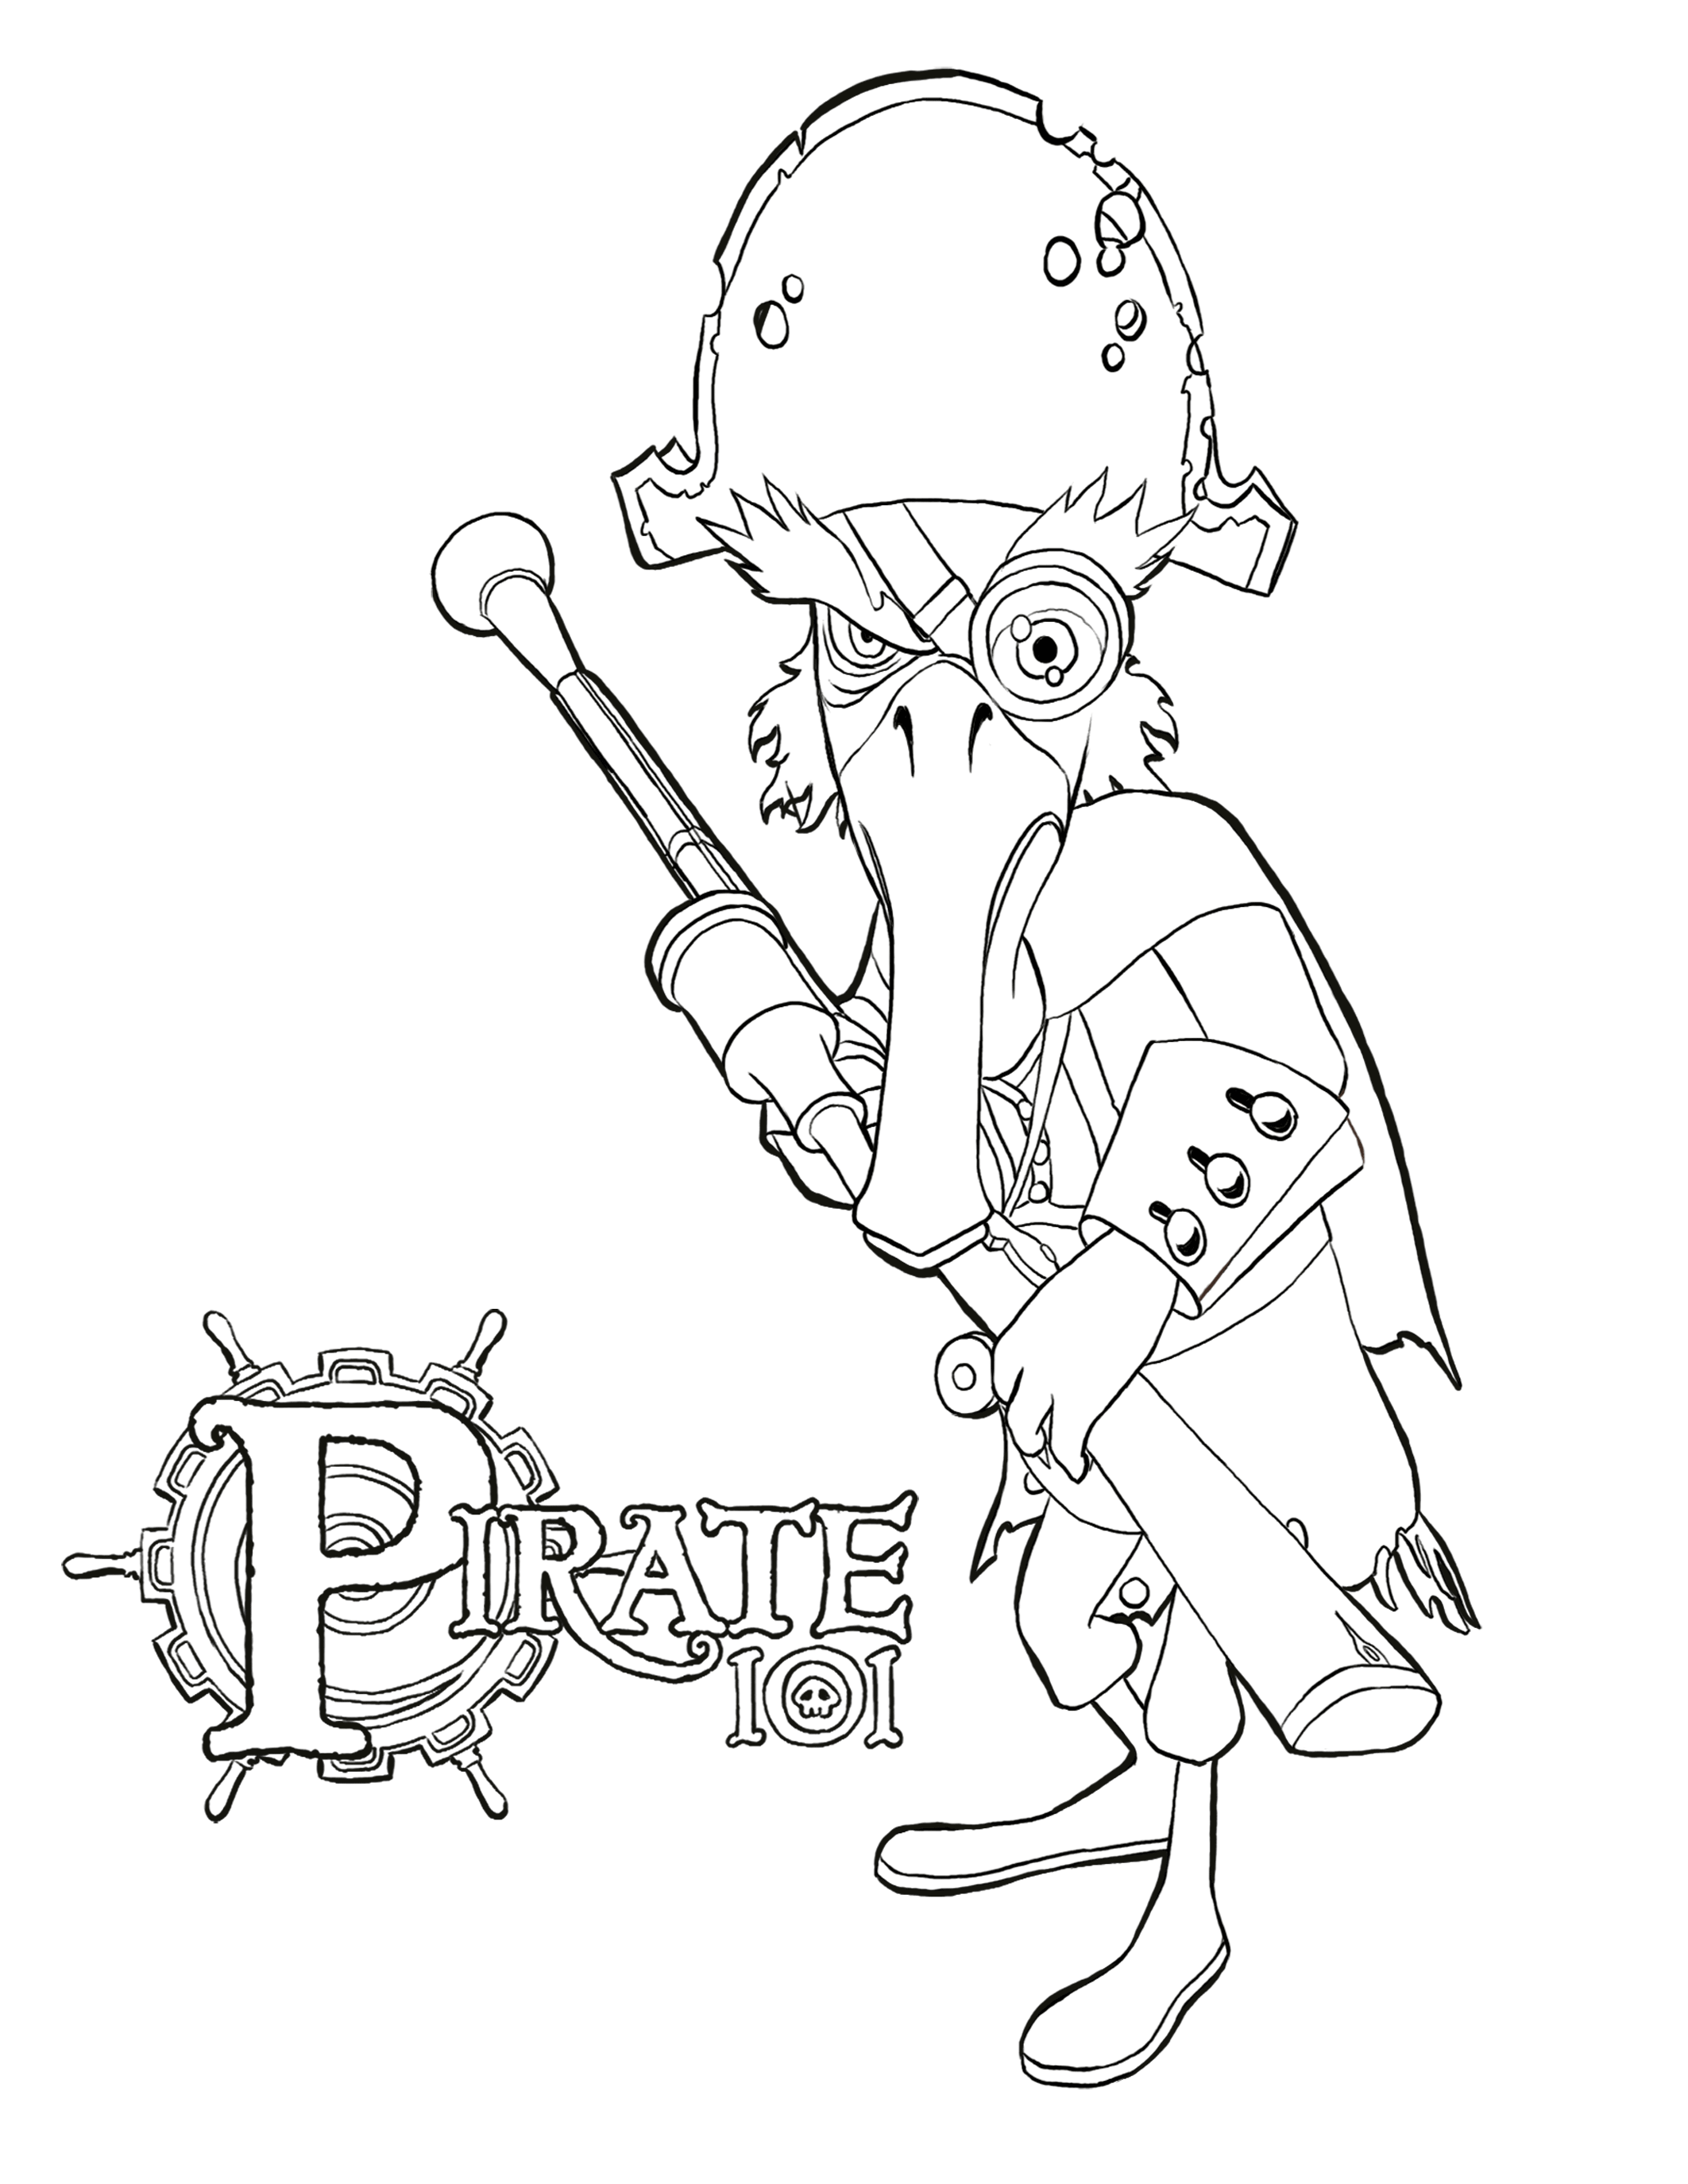 Pirate ships coloring pages az coloring pages - Pirate Coloring Pages Pirate101 Free Online Game